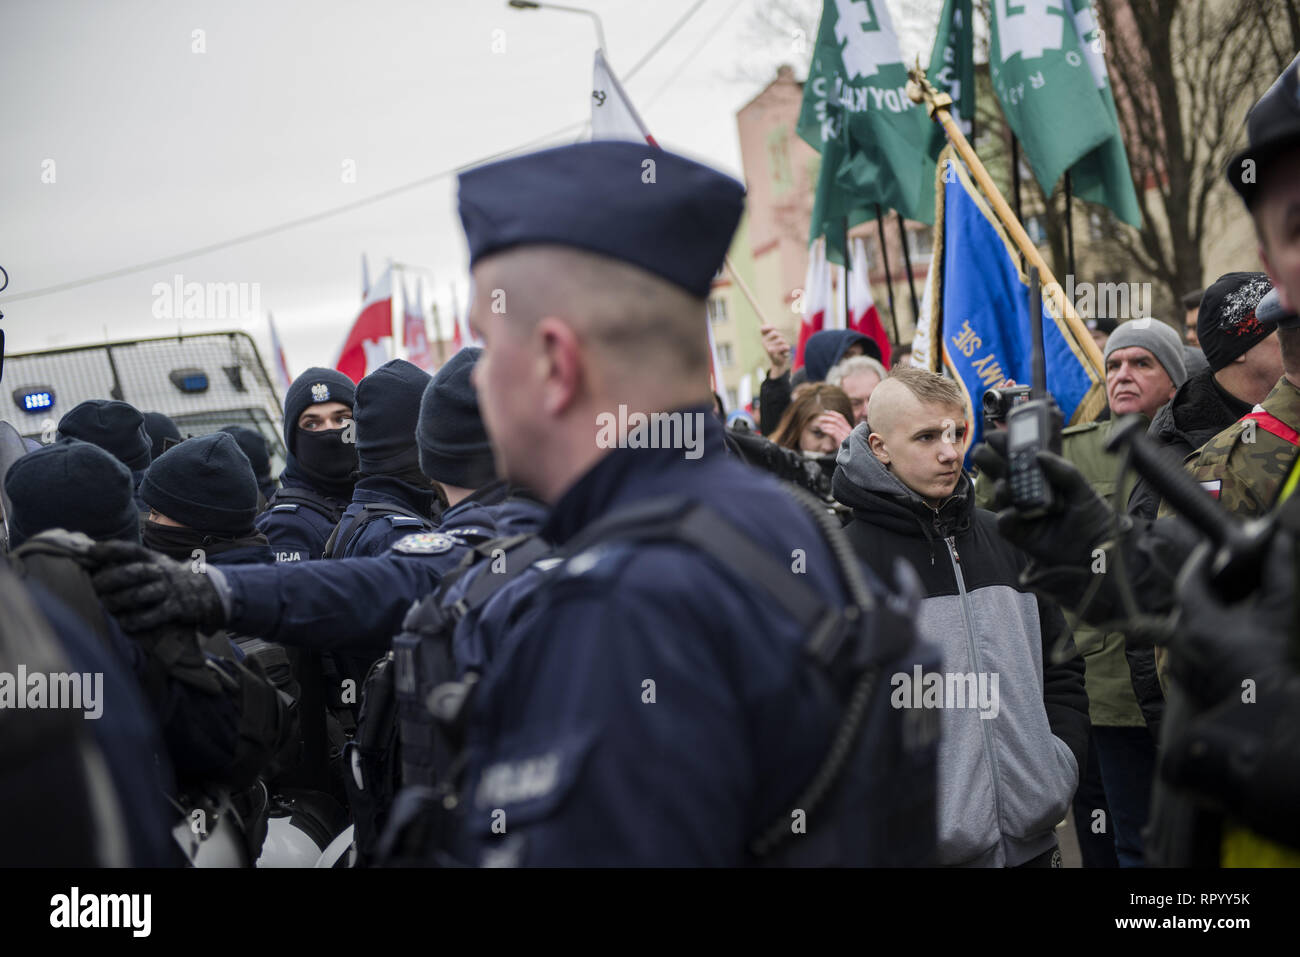 Hajnowka, Poldlaskie, Poland. 23rd Feb, 2019. Police forces seen providing protection during the march.Polish nationalists organized a commemorative march of the 'Cursed Soldiers'' in the city of Hajnowka next to the Belarusian border. The Cursed Soldiers also known as the Doomed Soldiers were anti-communist resistant fighters after WWII, however they were also famous of committing crimes against civilians, mostly ethnic Belarusians. Credit: Attila Husejnow/SOPA Images/ZUMA Wire/Alamy Live News - Stock Image